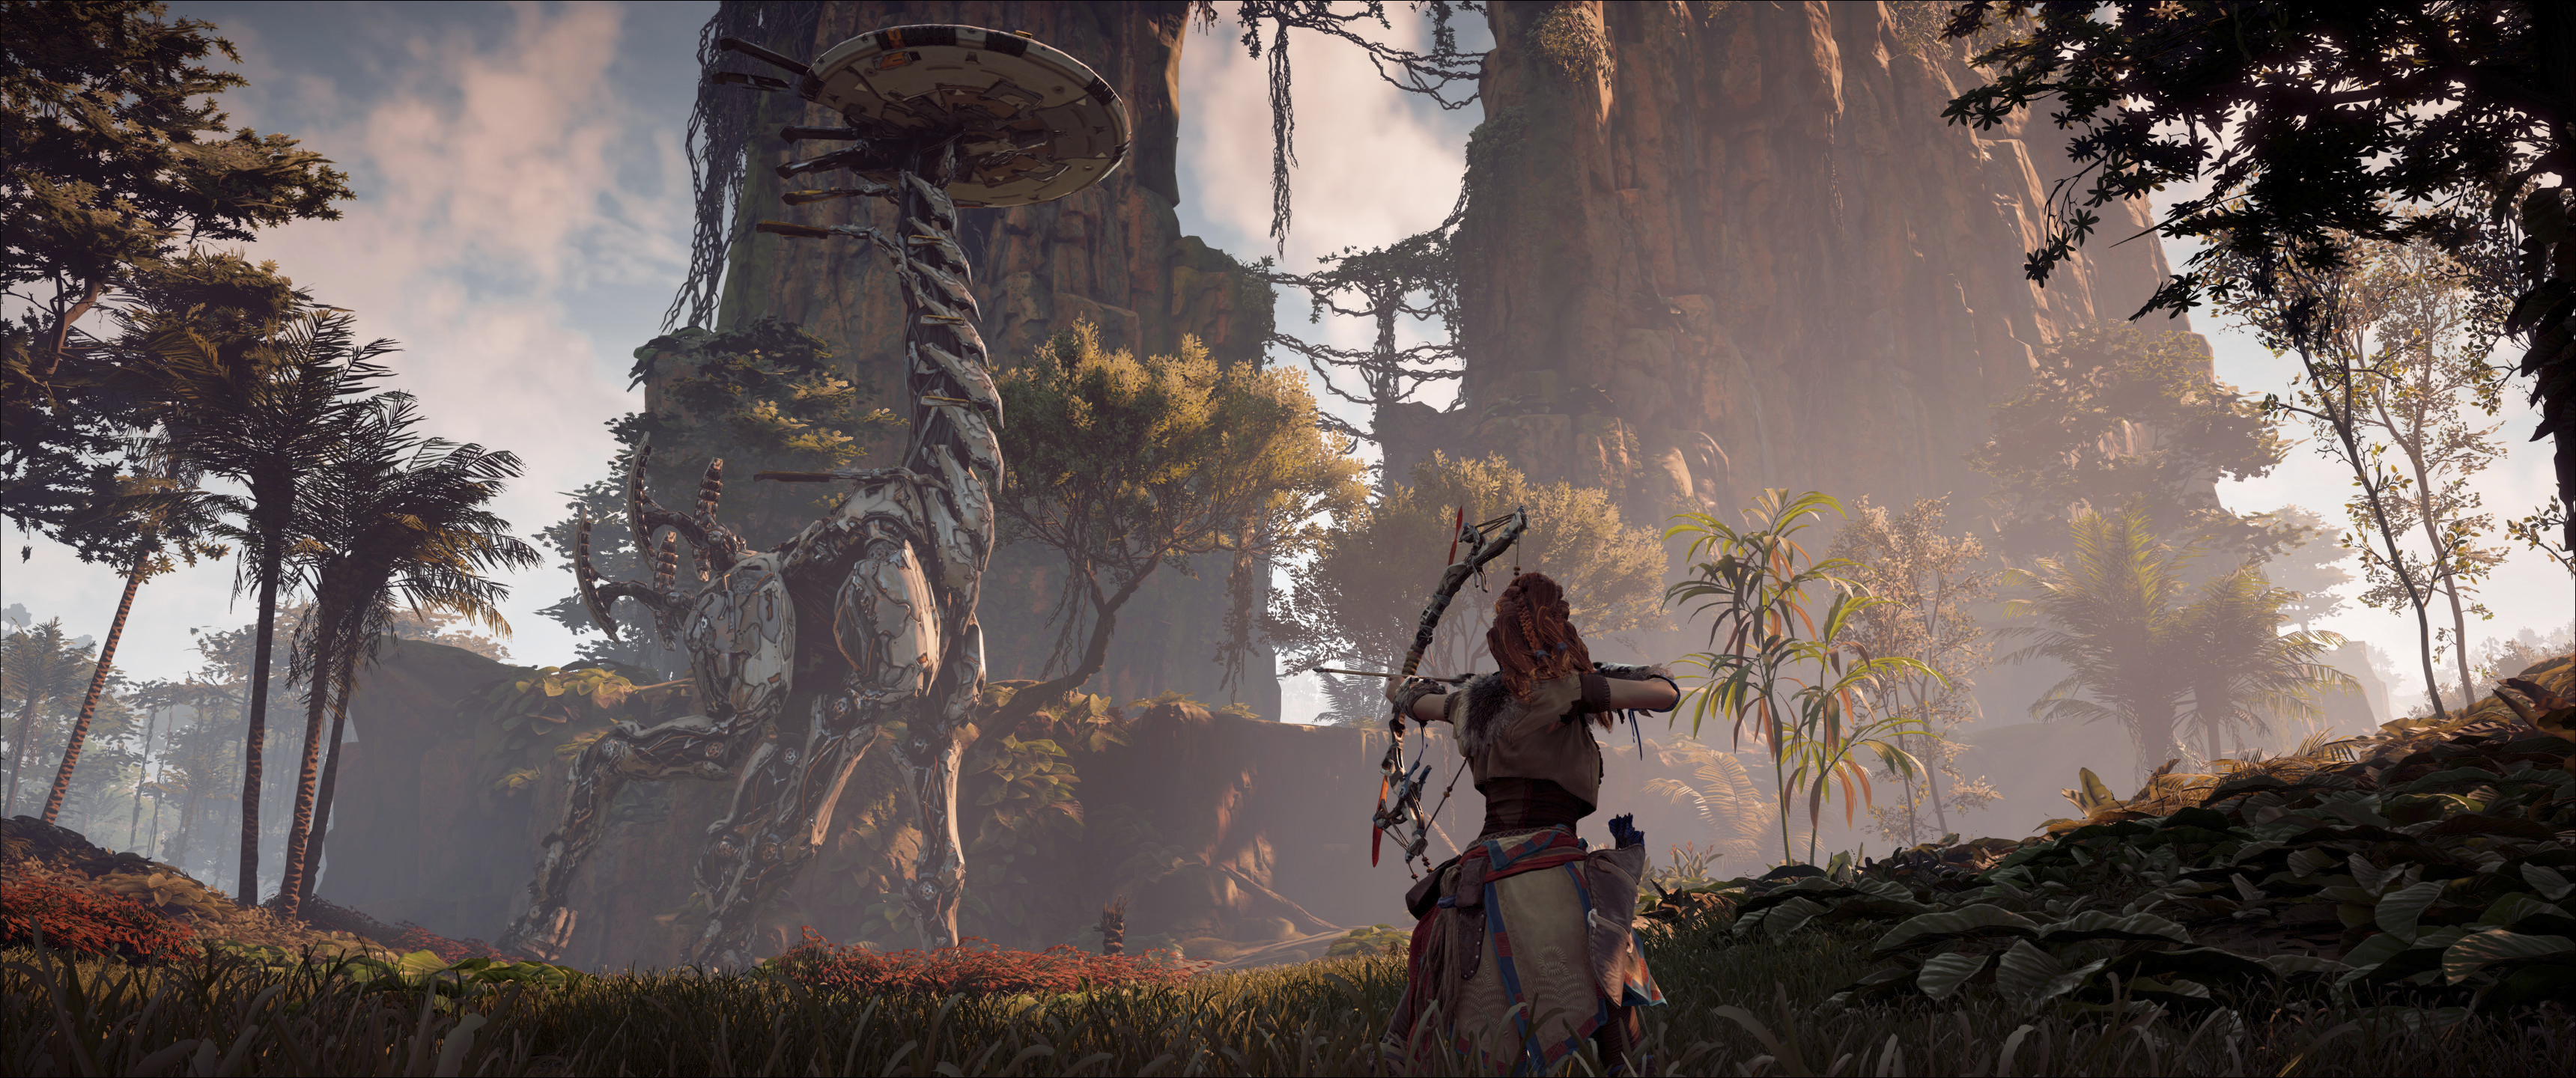 astuces Horizon Zero Dawn